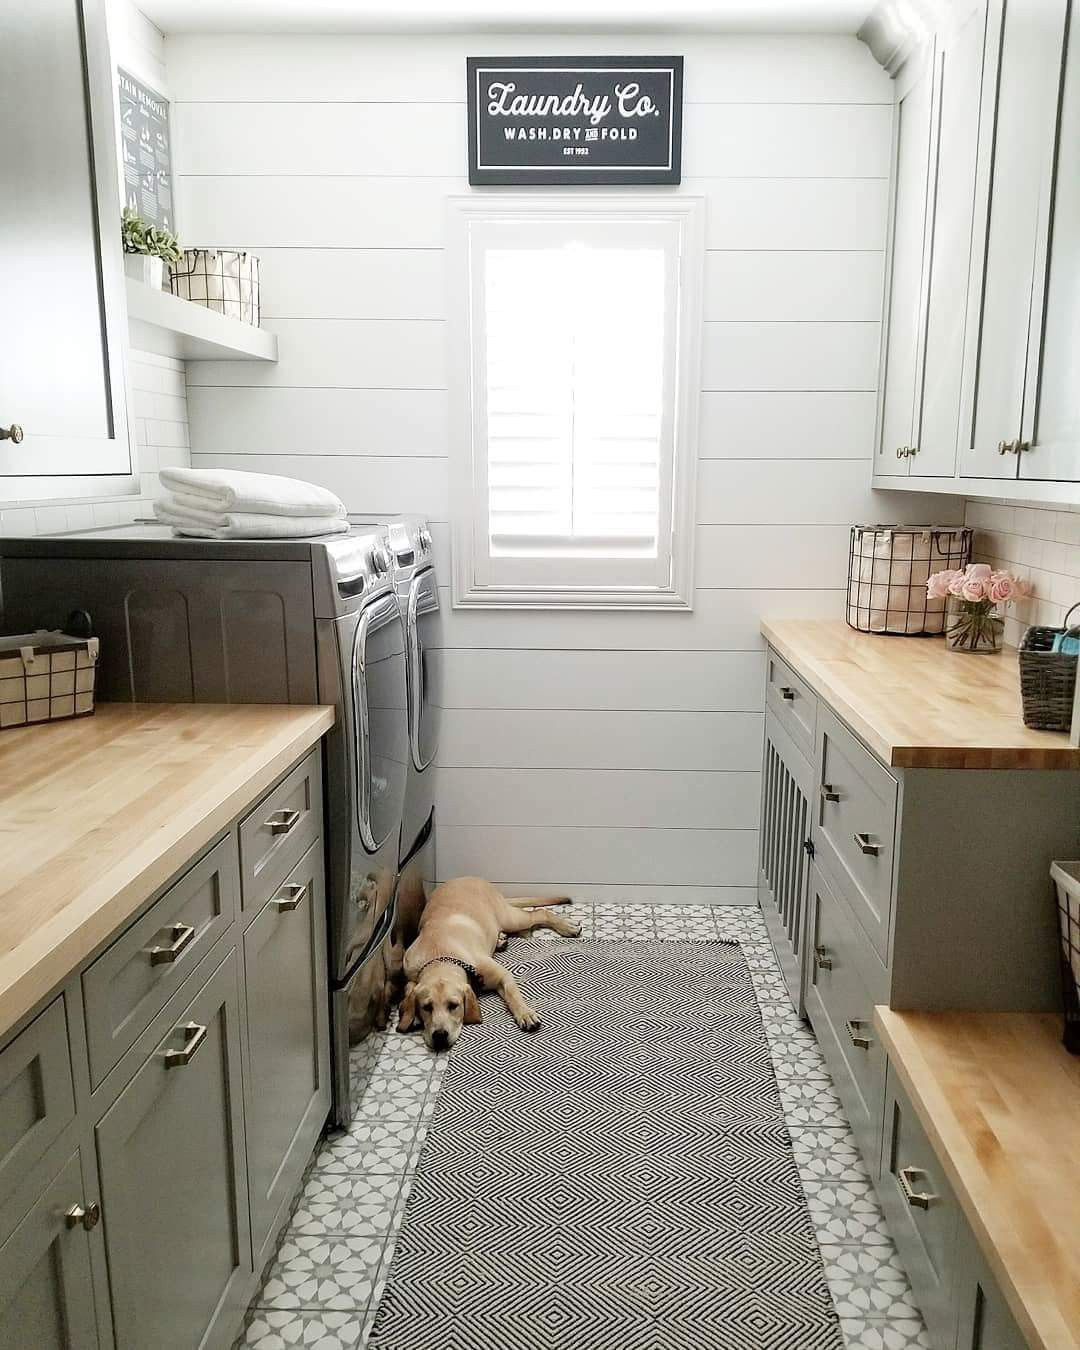 10x10 Laundry Room Layout: Pin By Southern Seven Designs On Pantry And Laundry